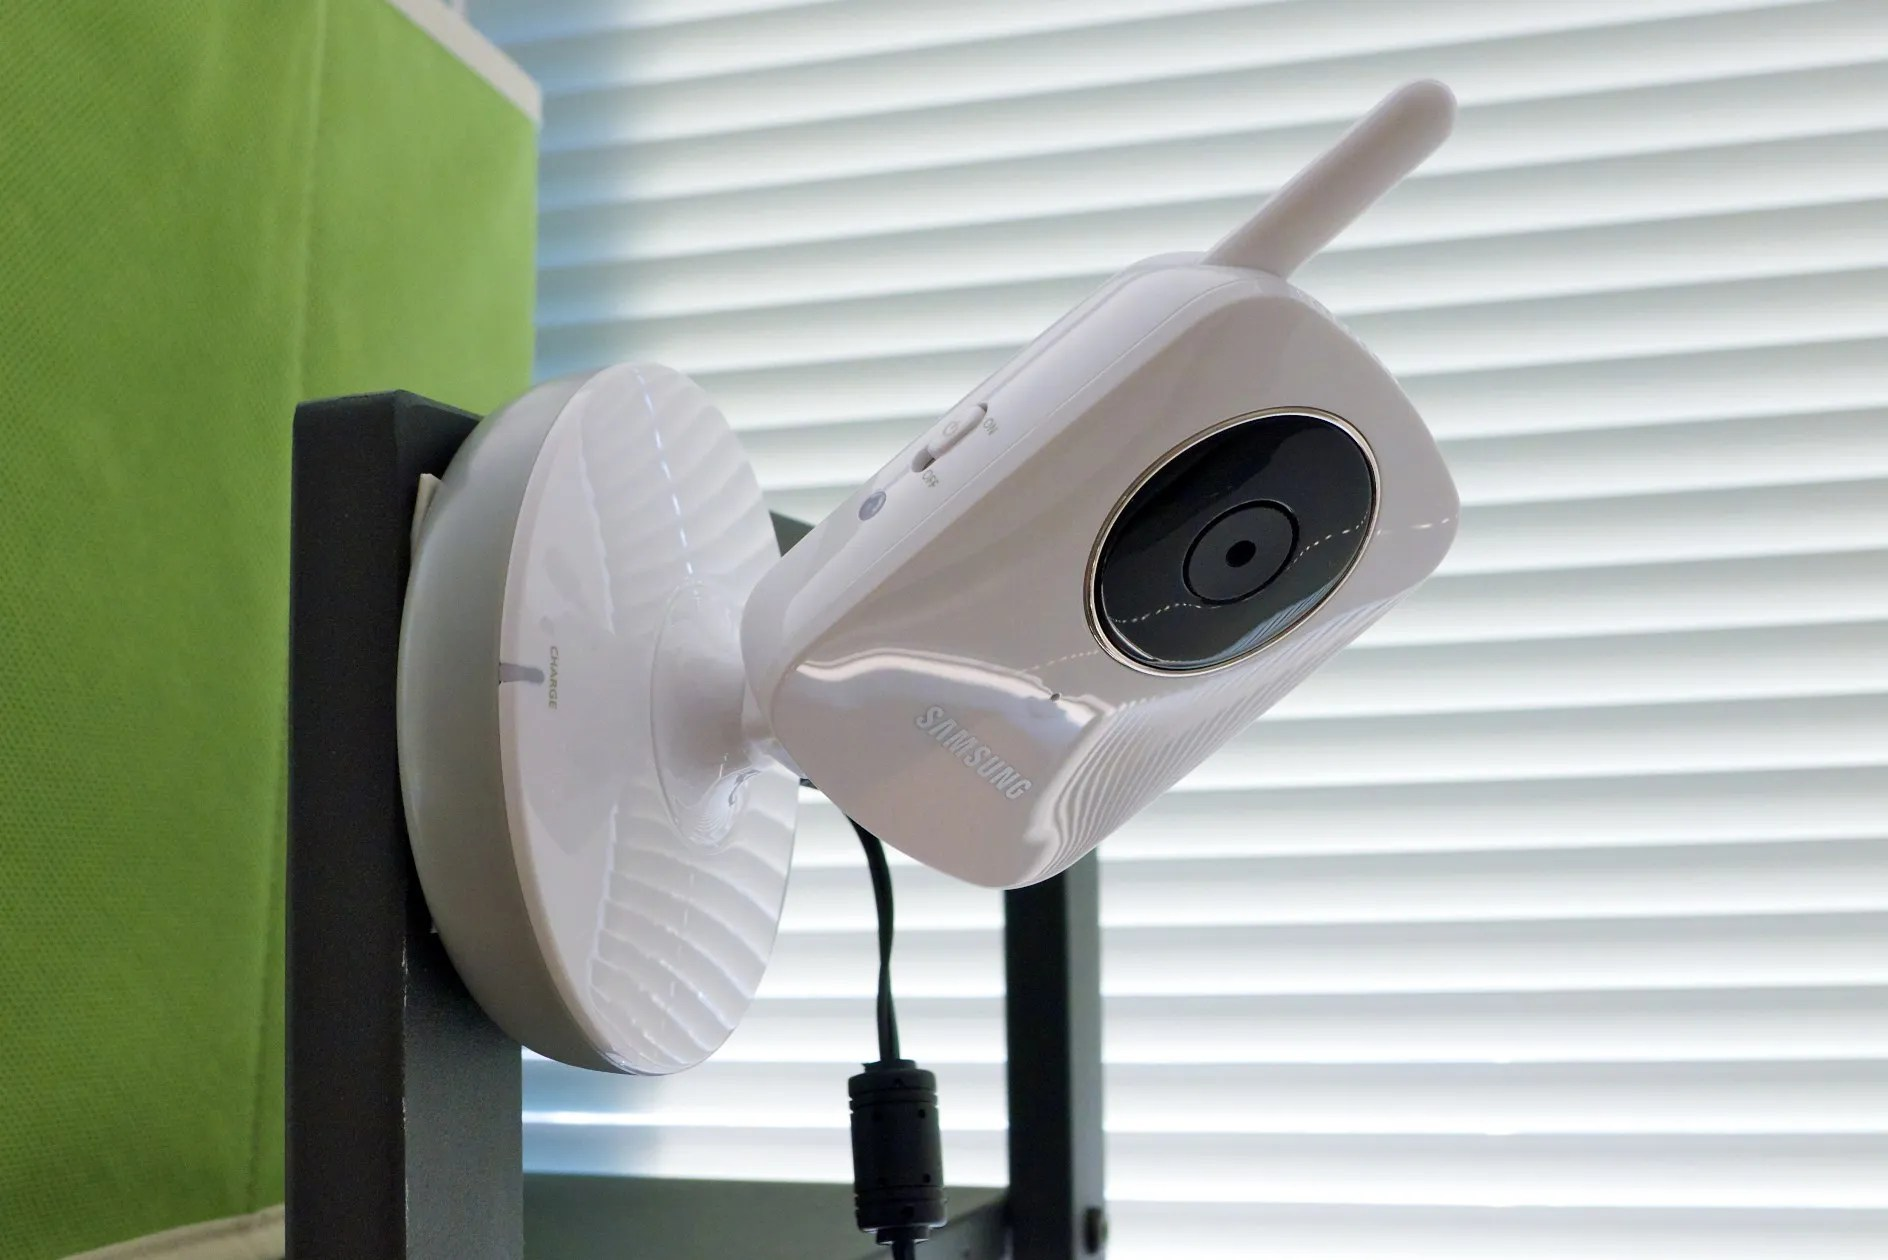 Pristine Hackers Are Exploiting Baby But We Know How To S M Hackers Are Exploiting Baby But We Know How To S M Samsung Baby Monitor Extra Camera Samsung Baby Monitor Brightview baby Samsung Baby Monitor